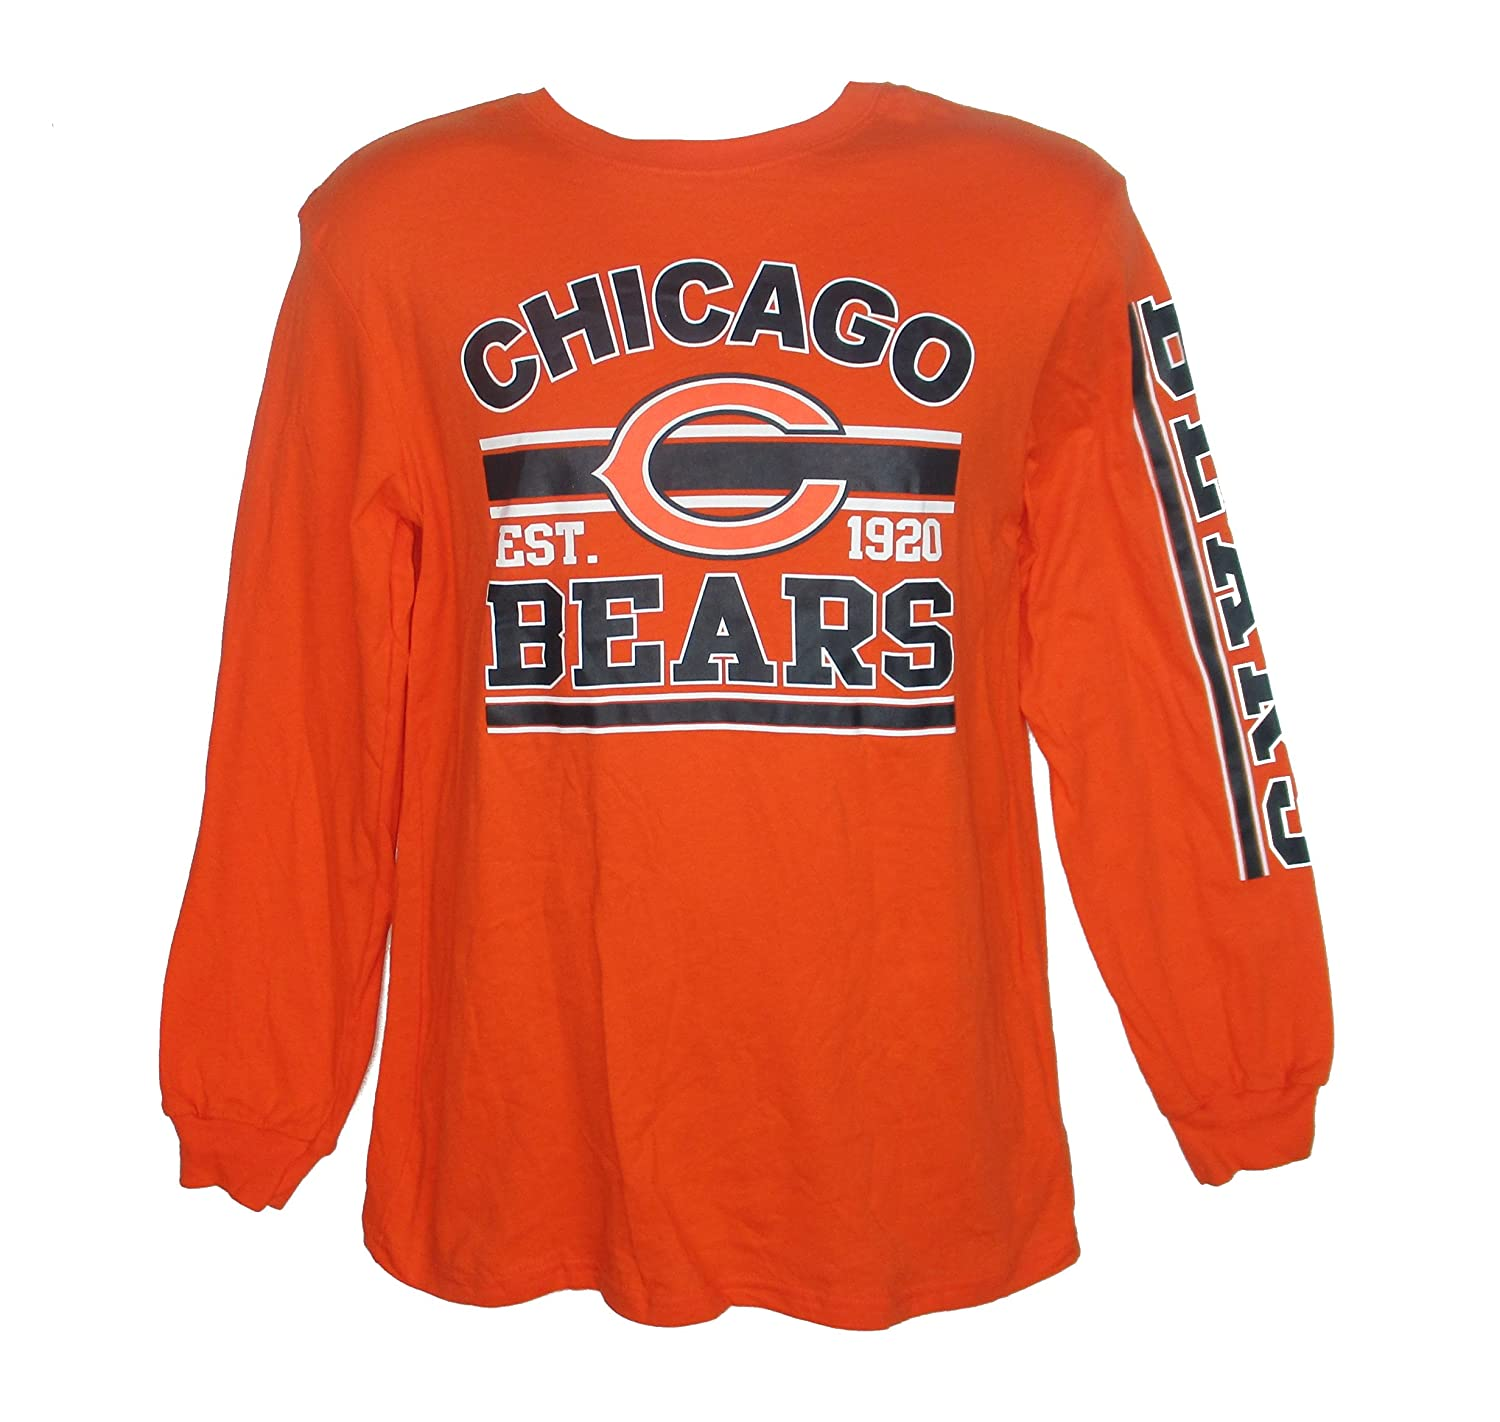 a07a1be5 Amazon.com : Chicago Bears Youth Small 8 Long Sleeve Shirt Kids ...